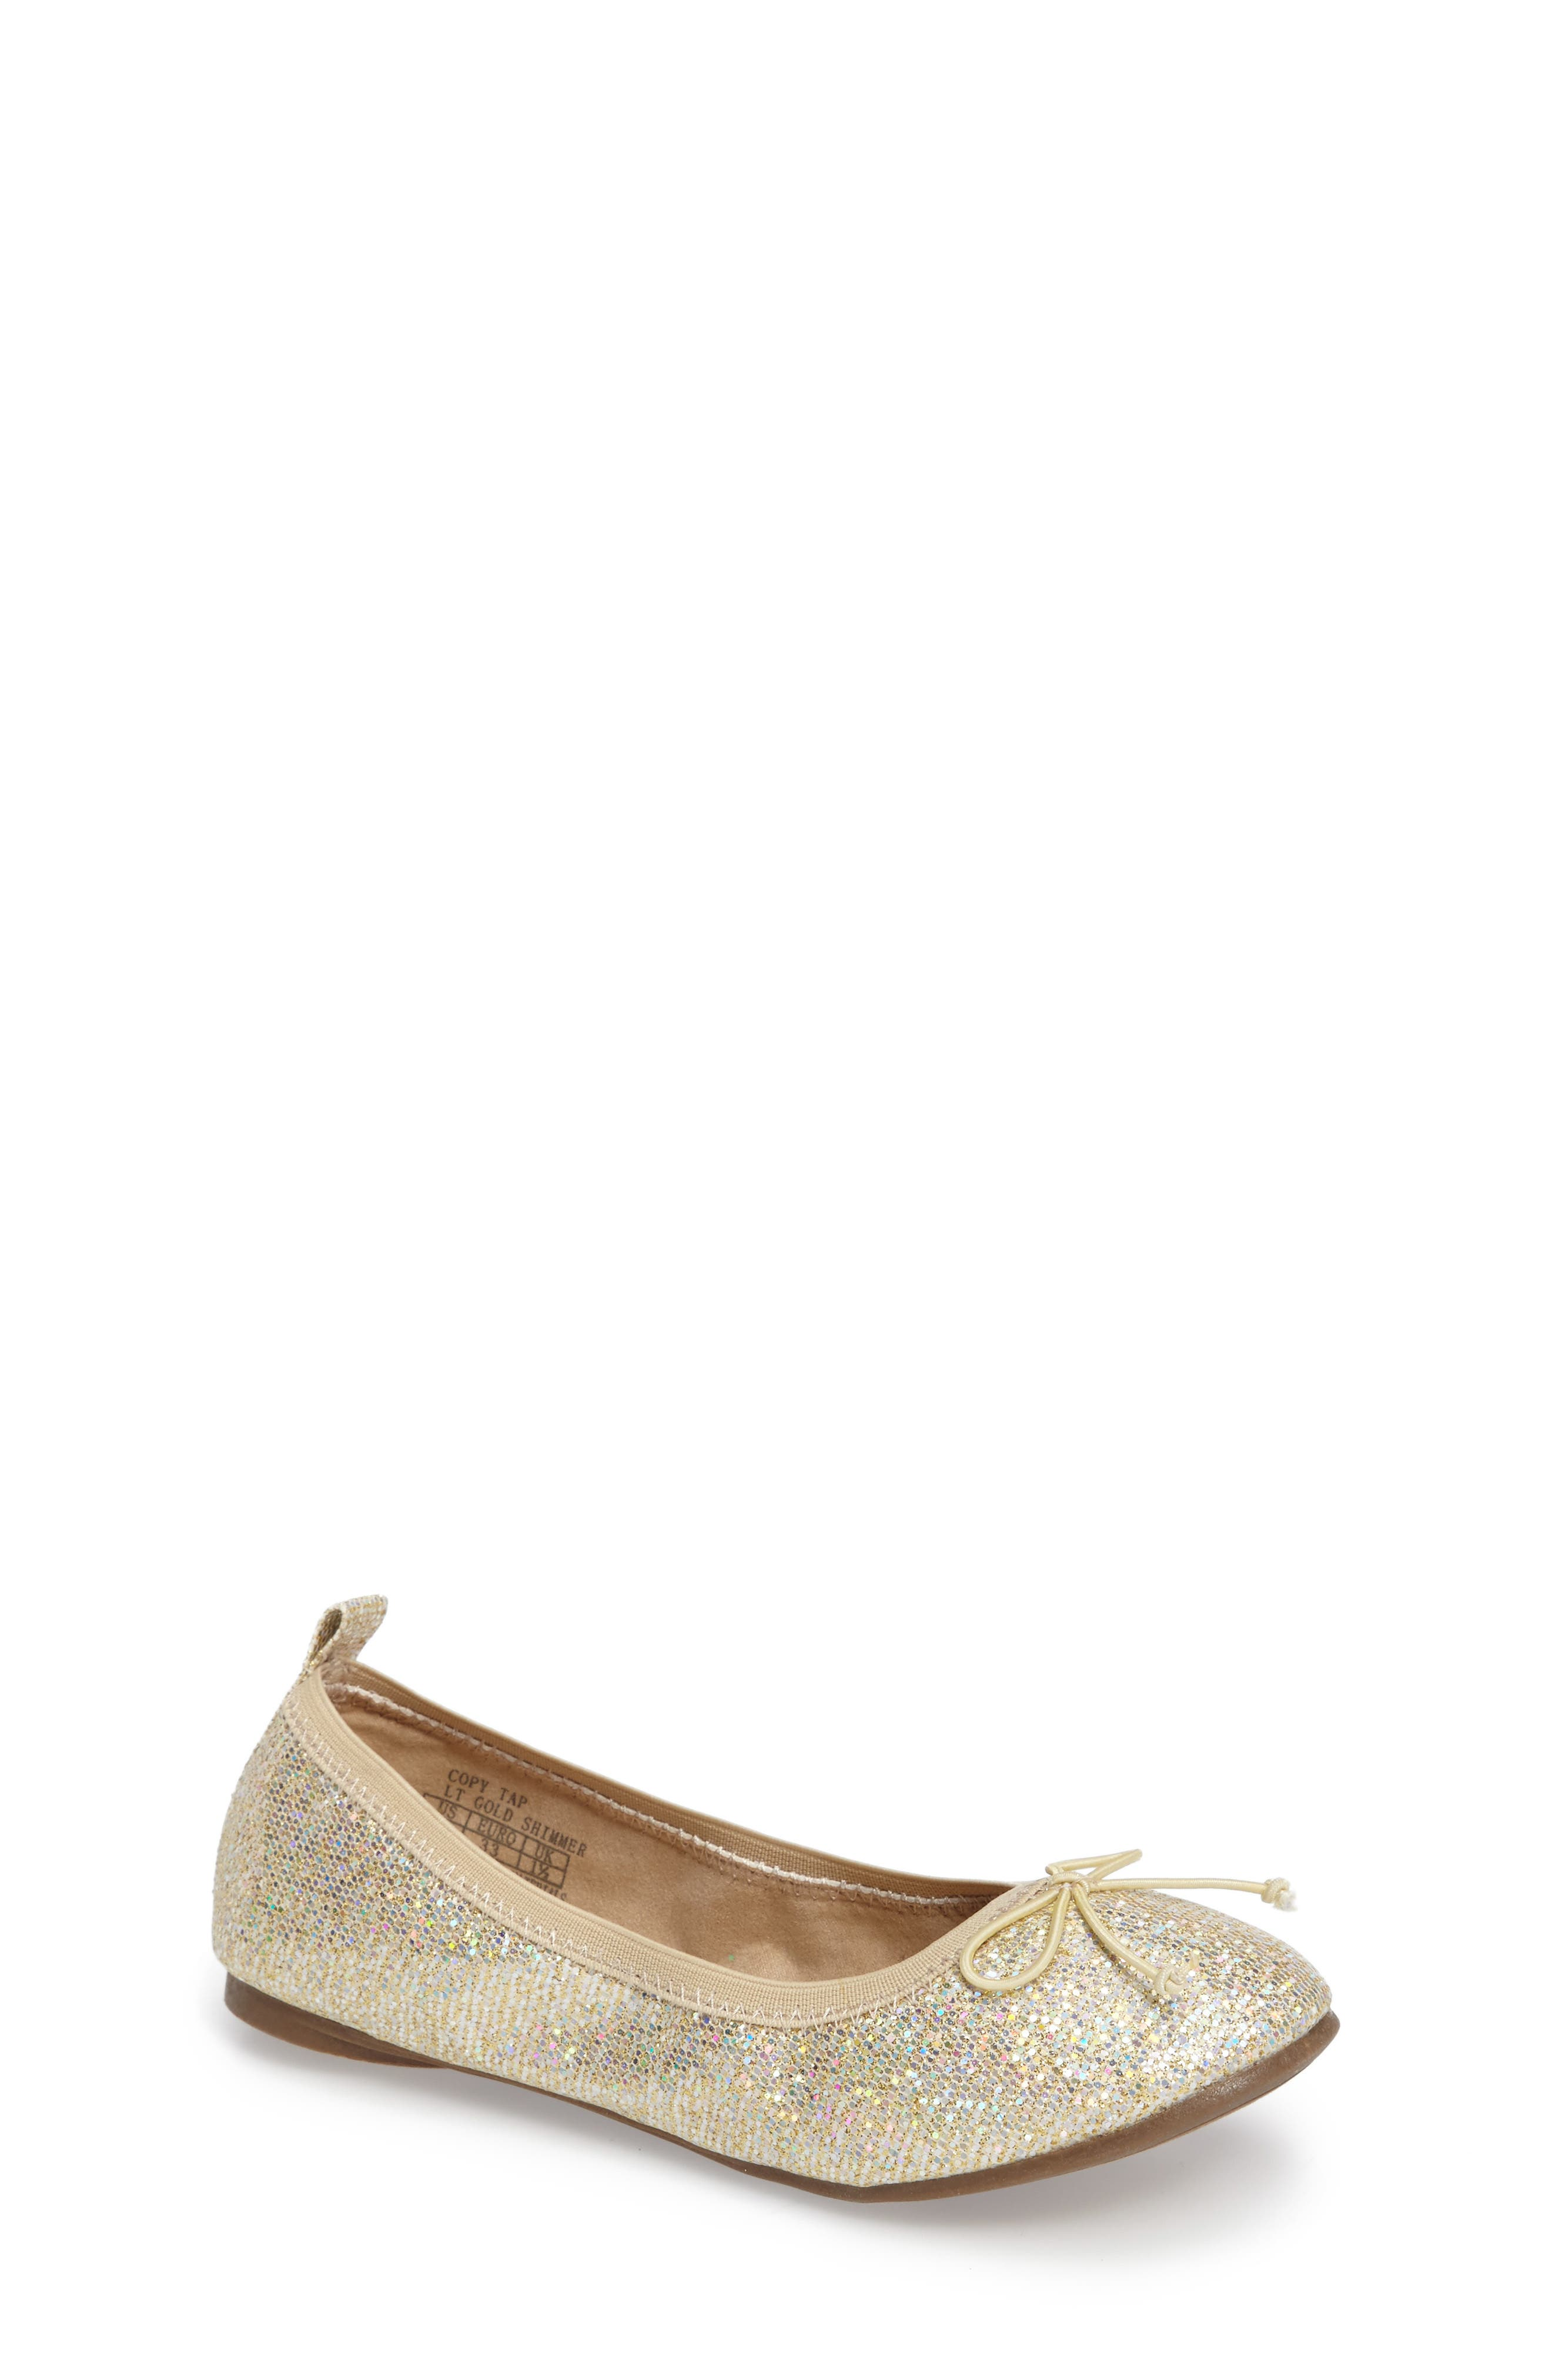 REACTION KENNETH COLE Copy Tap Ballet Flat